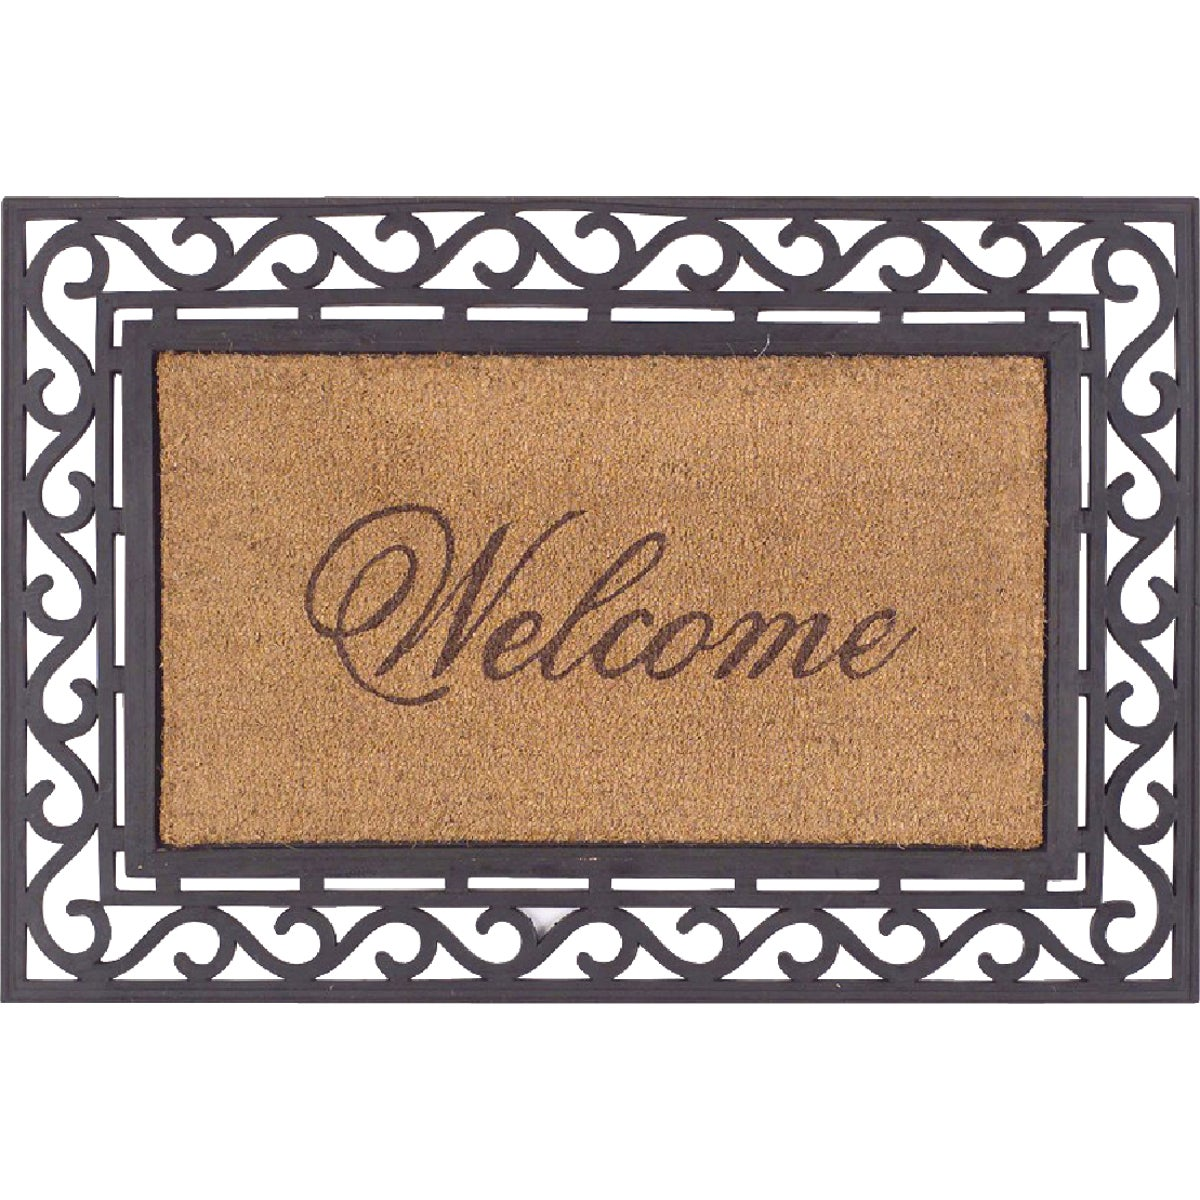 20X36 WELCOME KOKO MAT